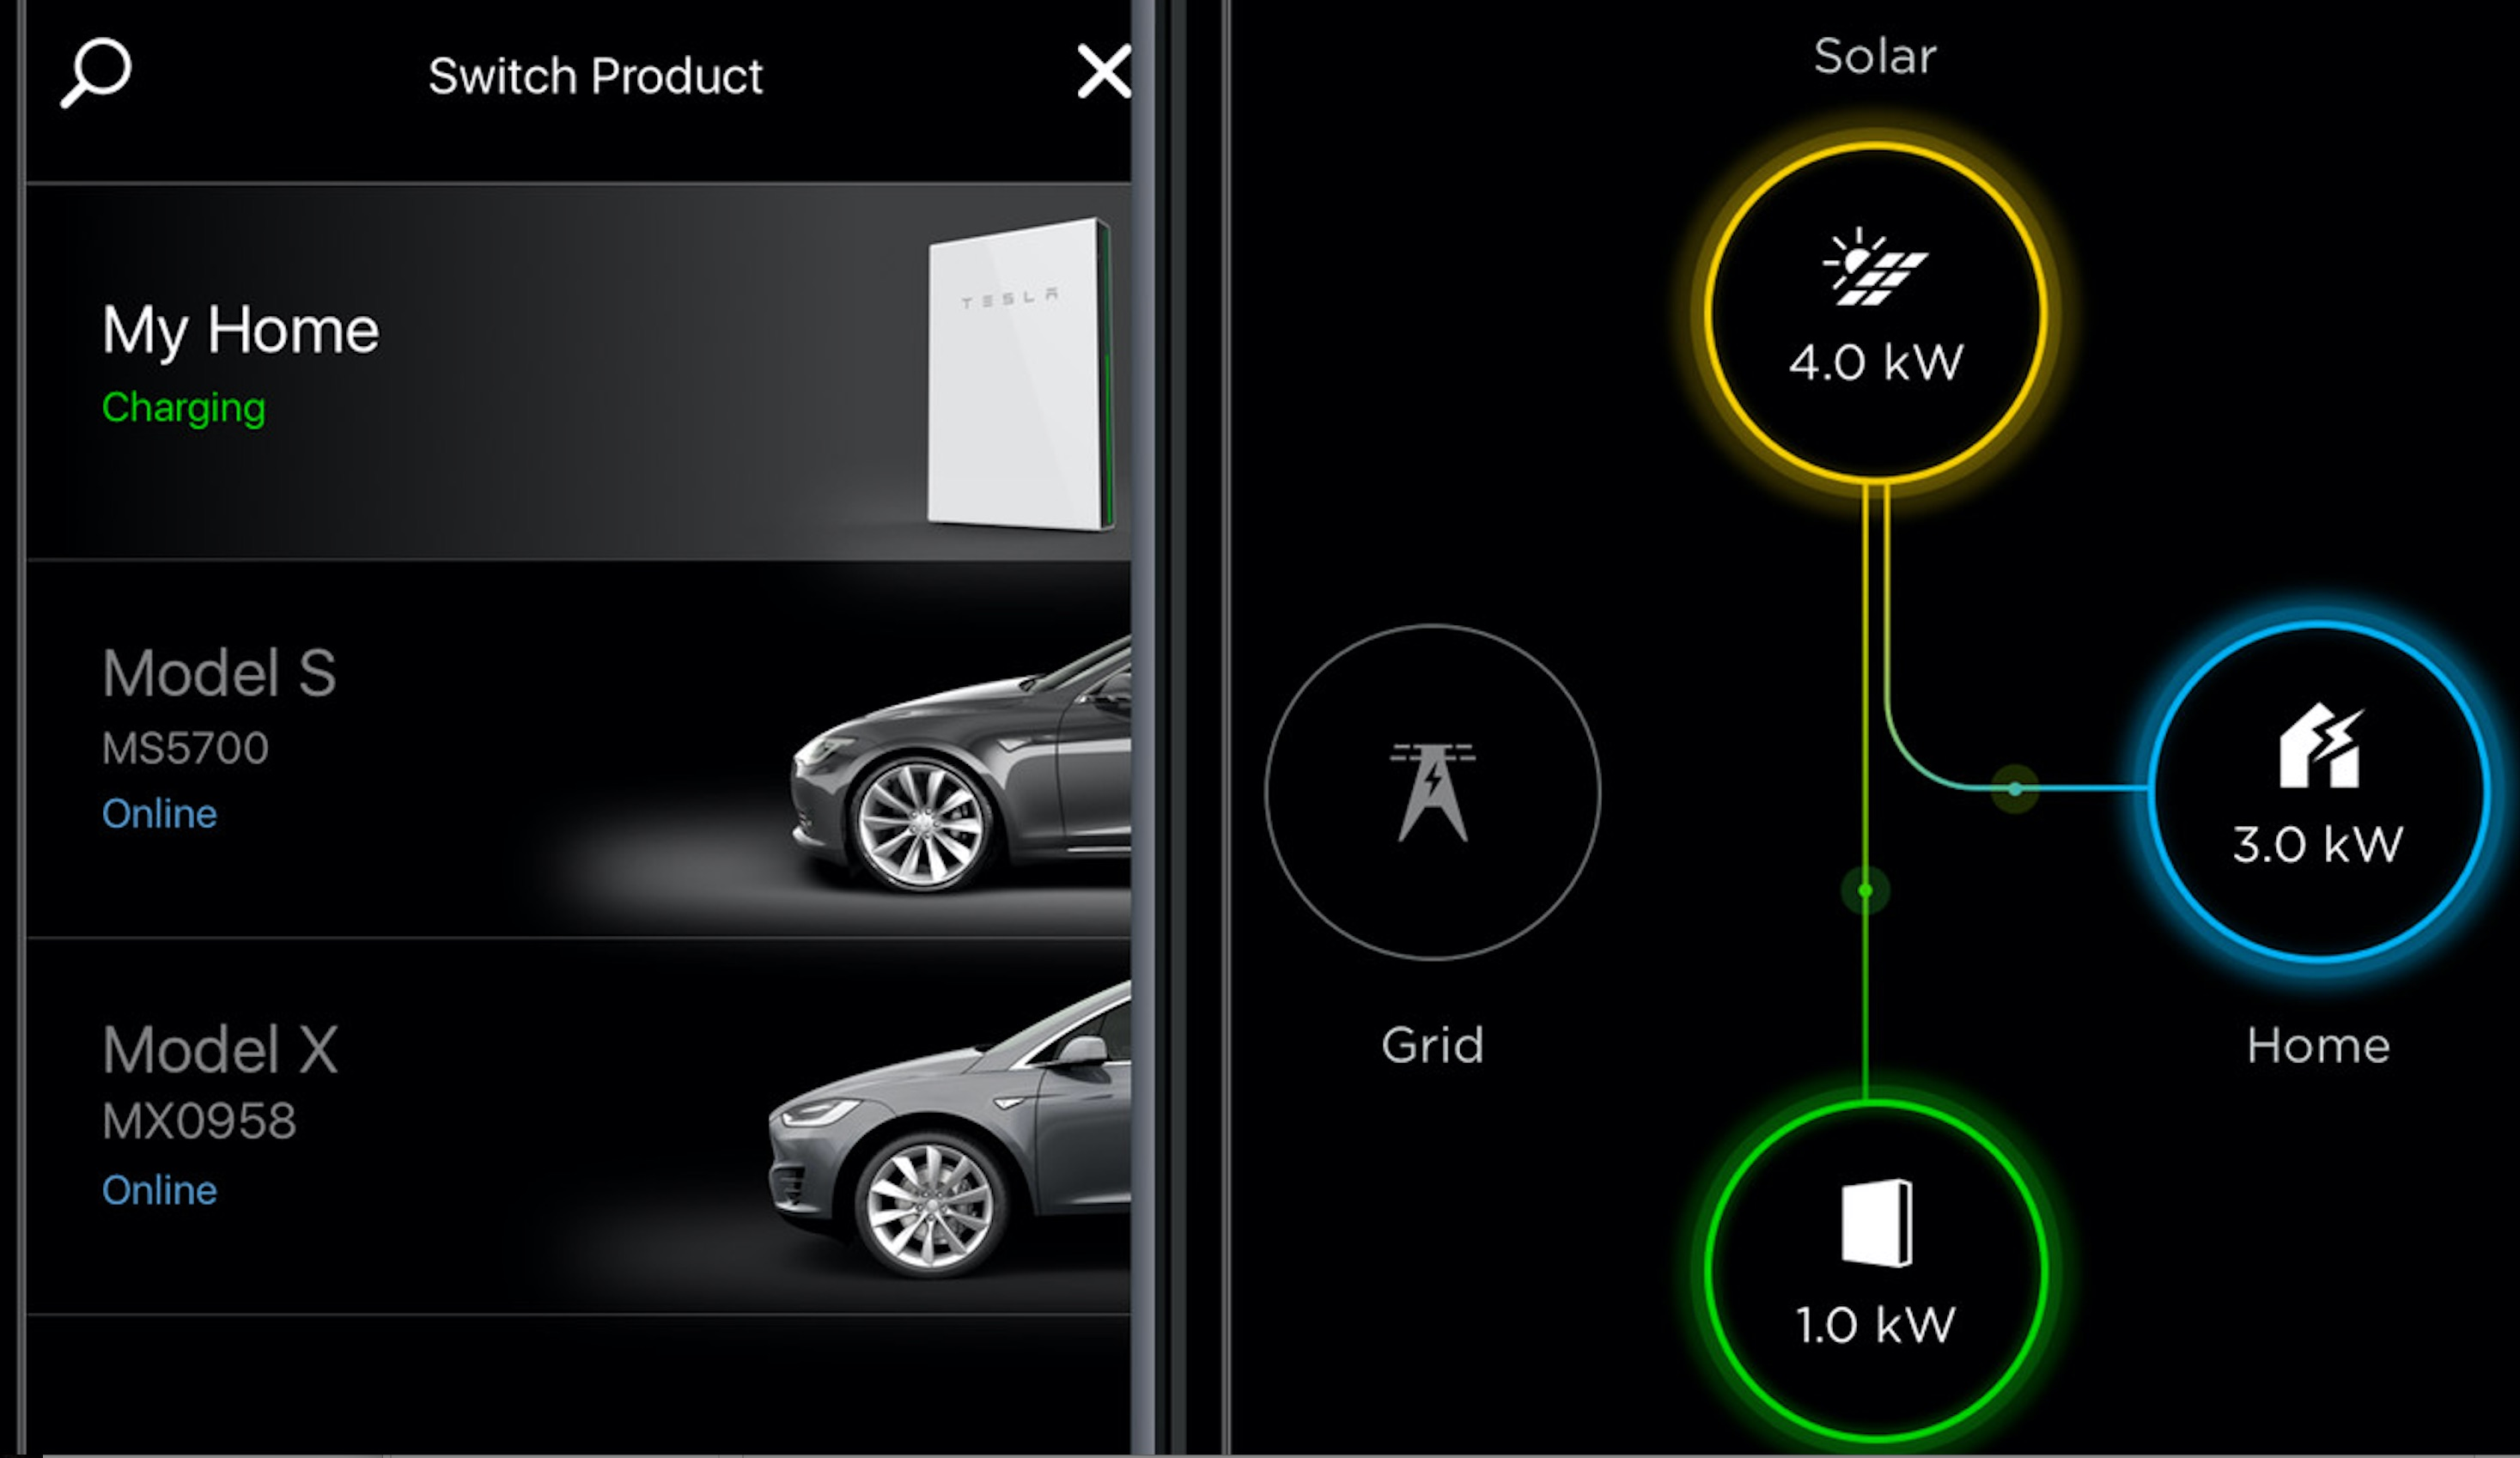 tesla-mobile-app-myhome-powerflow-screen